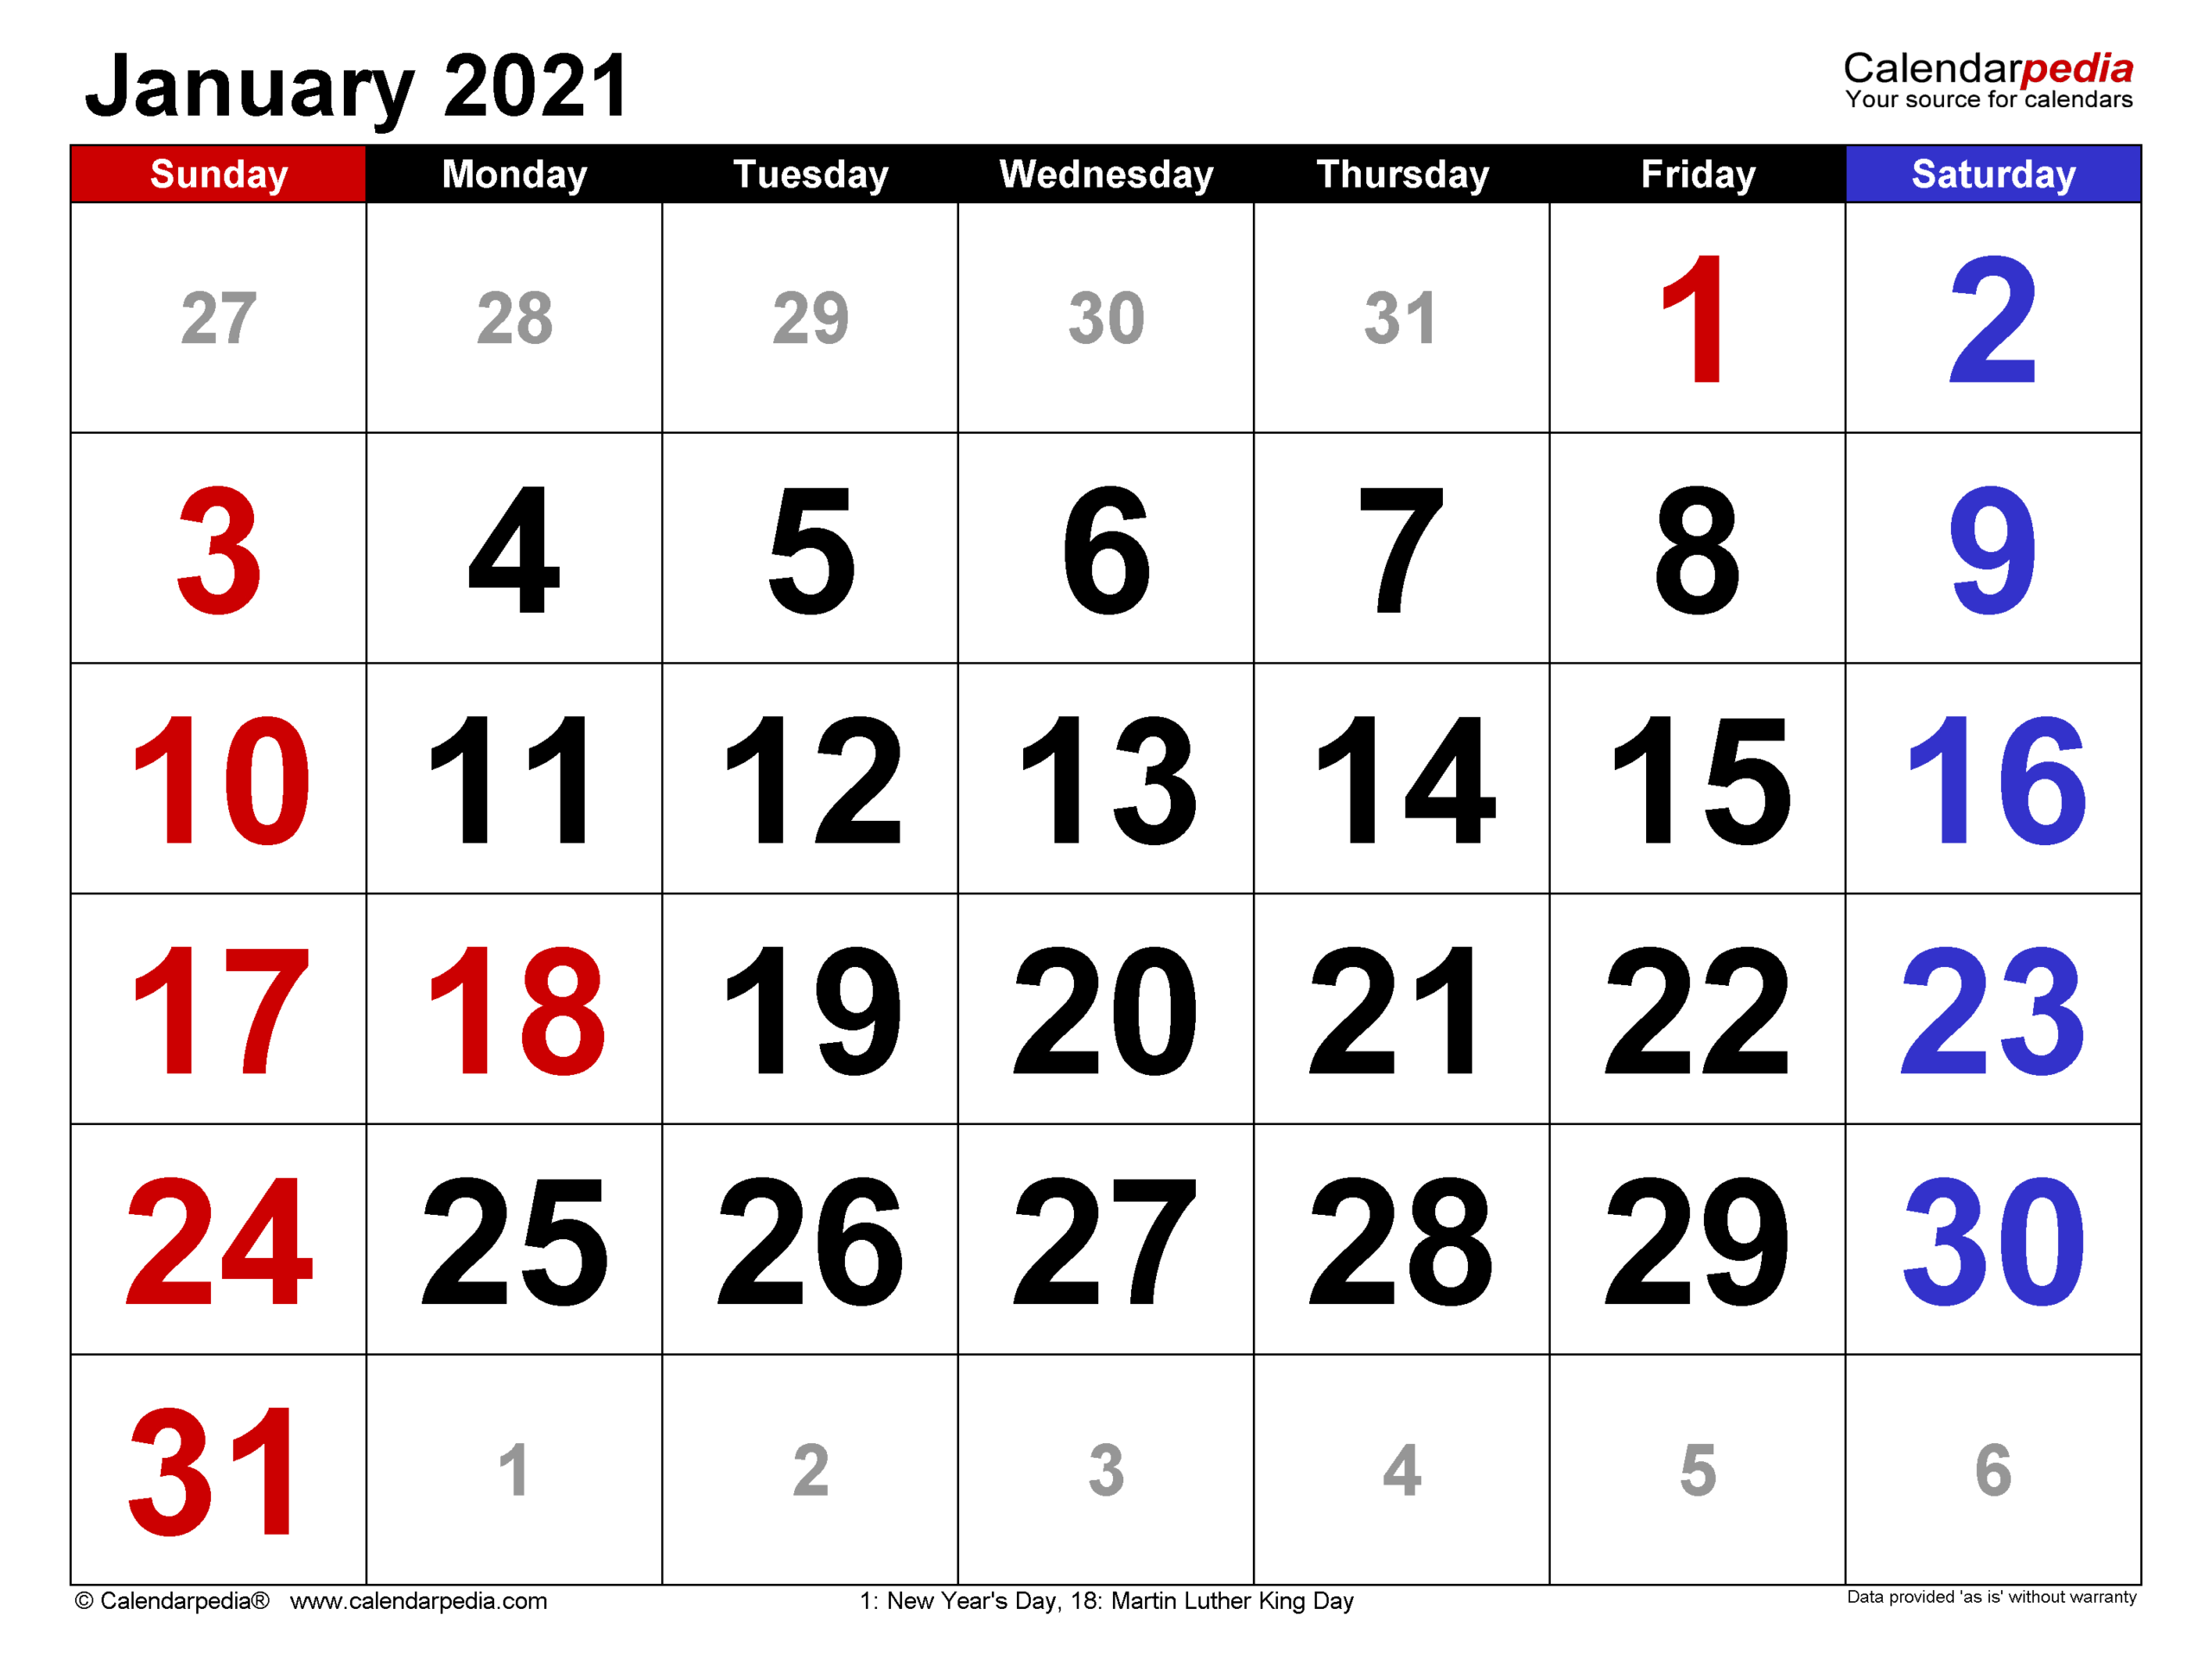 January 2021 Calendar | Templates For Word, Excel And Pdf pertaining to 2021 Large Print Calendar Monthly